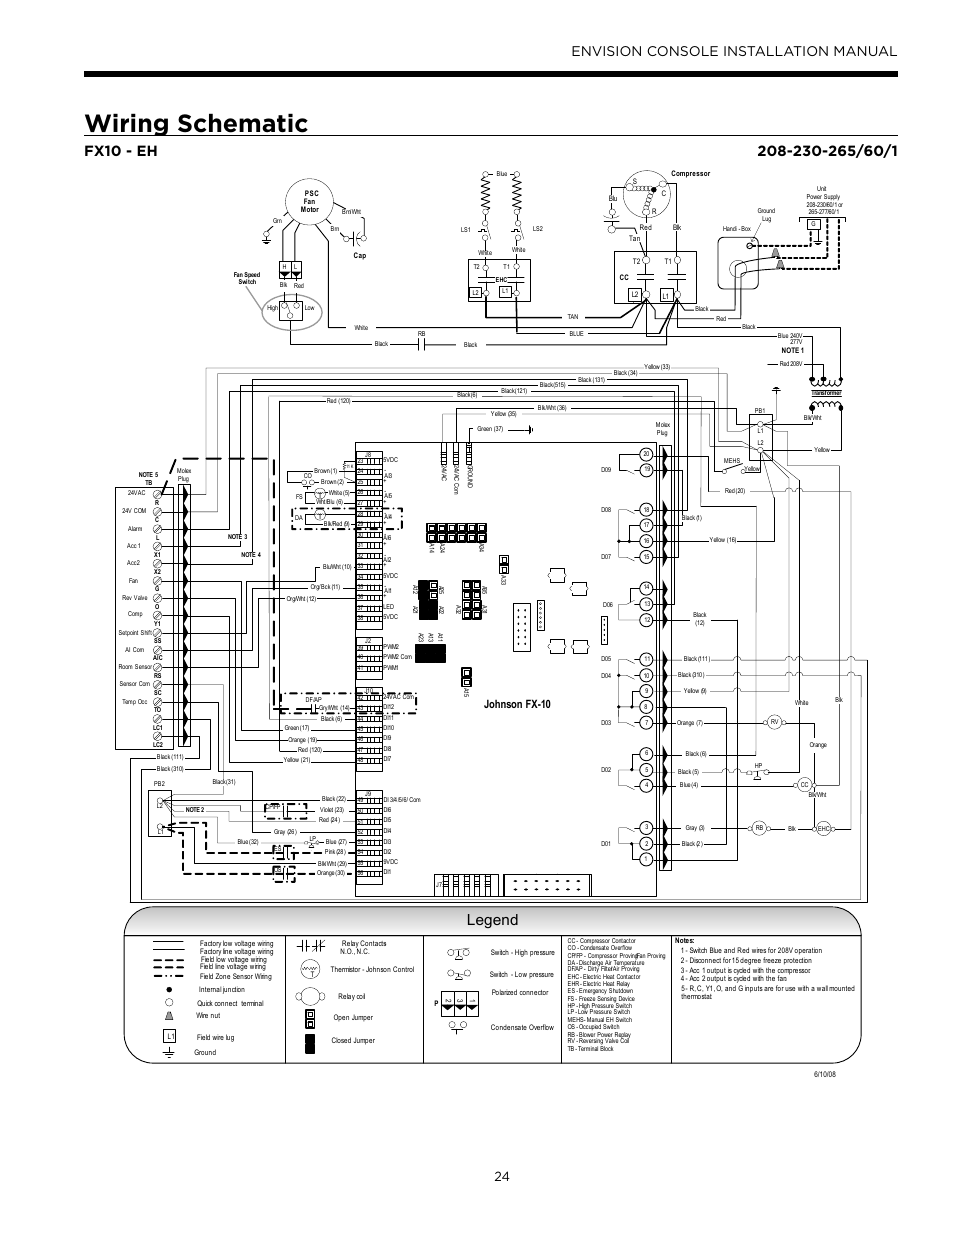 Waterfurnace Wiring Diagram Diagrams Source Legend Car Schematic Envision Console Installation Manual